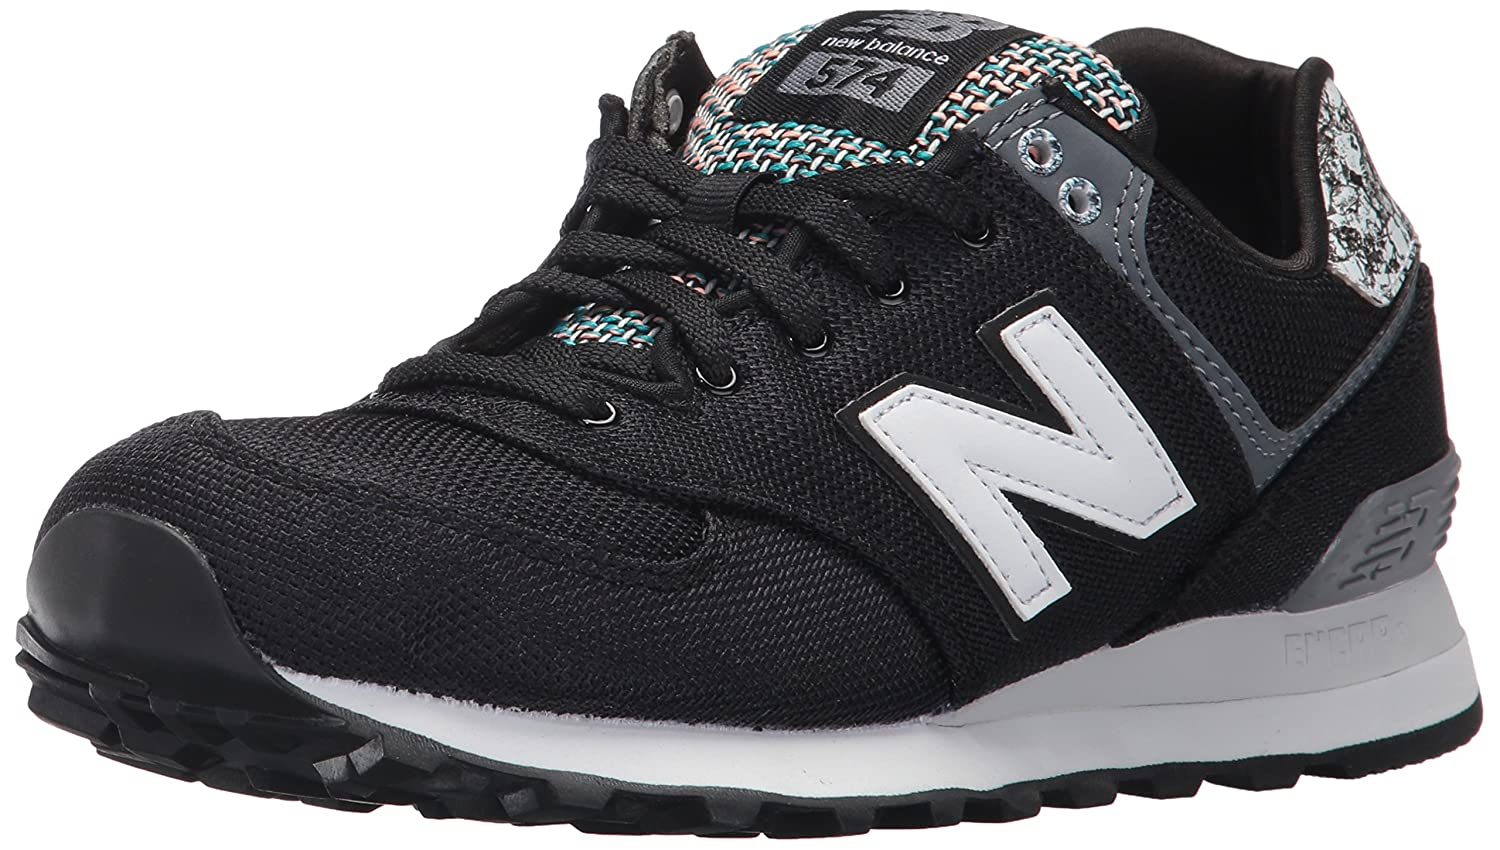 New Balance Women's 574v1 Art School Sneaker B01N66HNMD 7 B(M) US|Black/Silver/Mink